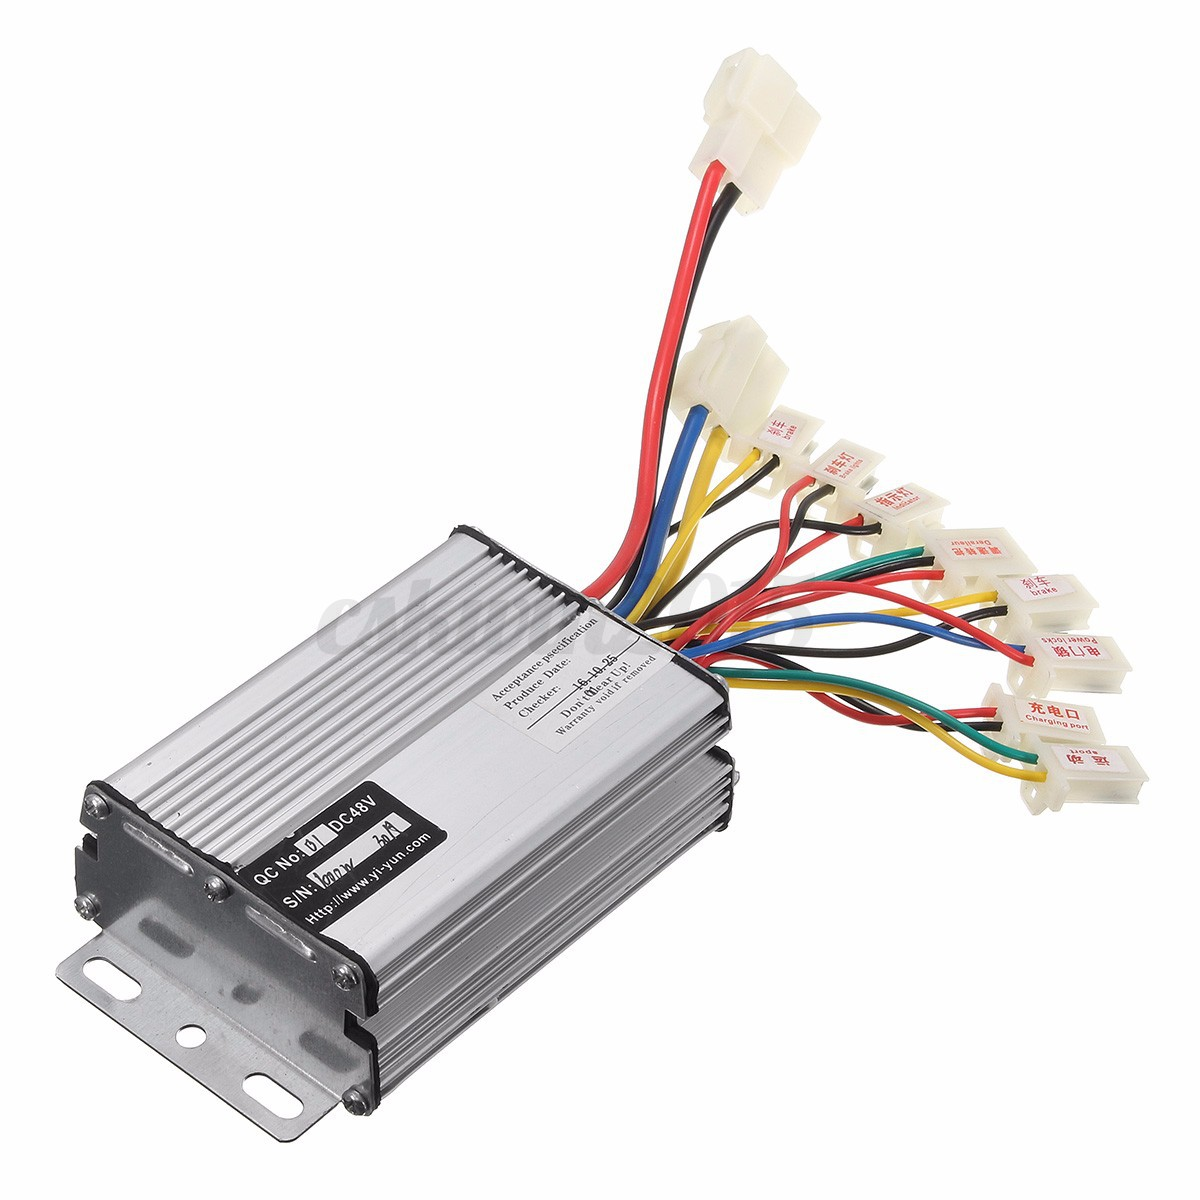 24v 36v 48v 250w 1000w electric scooter speed controller for Speed control for electric motor